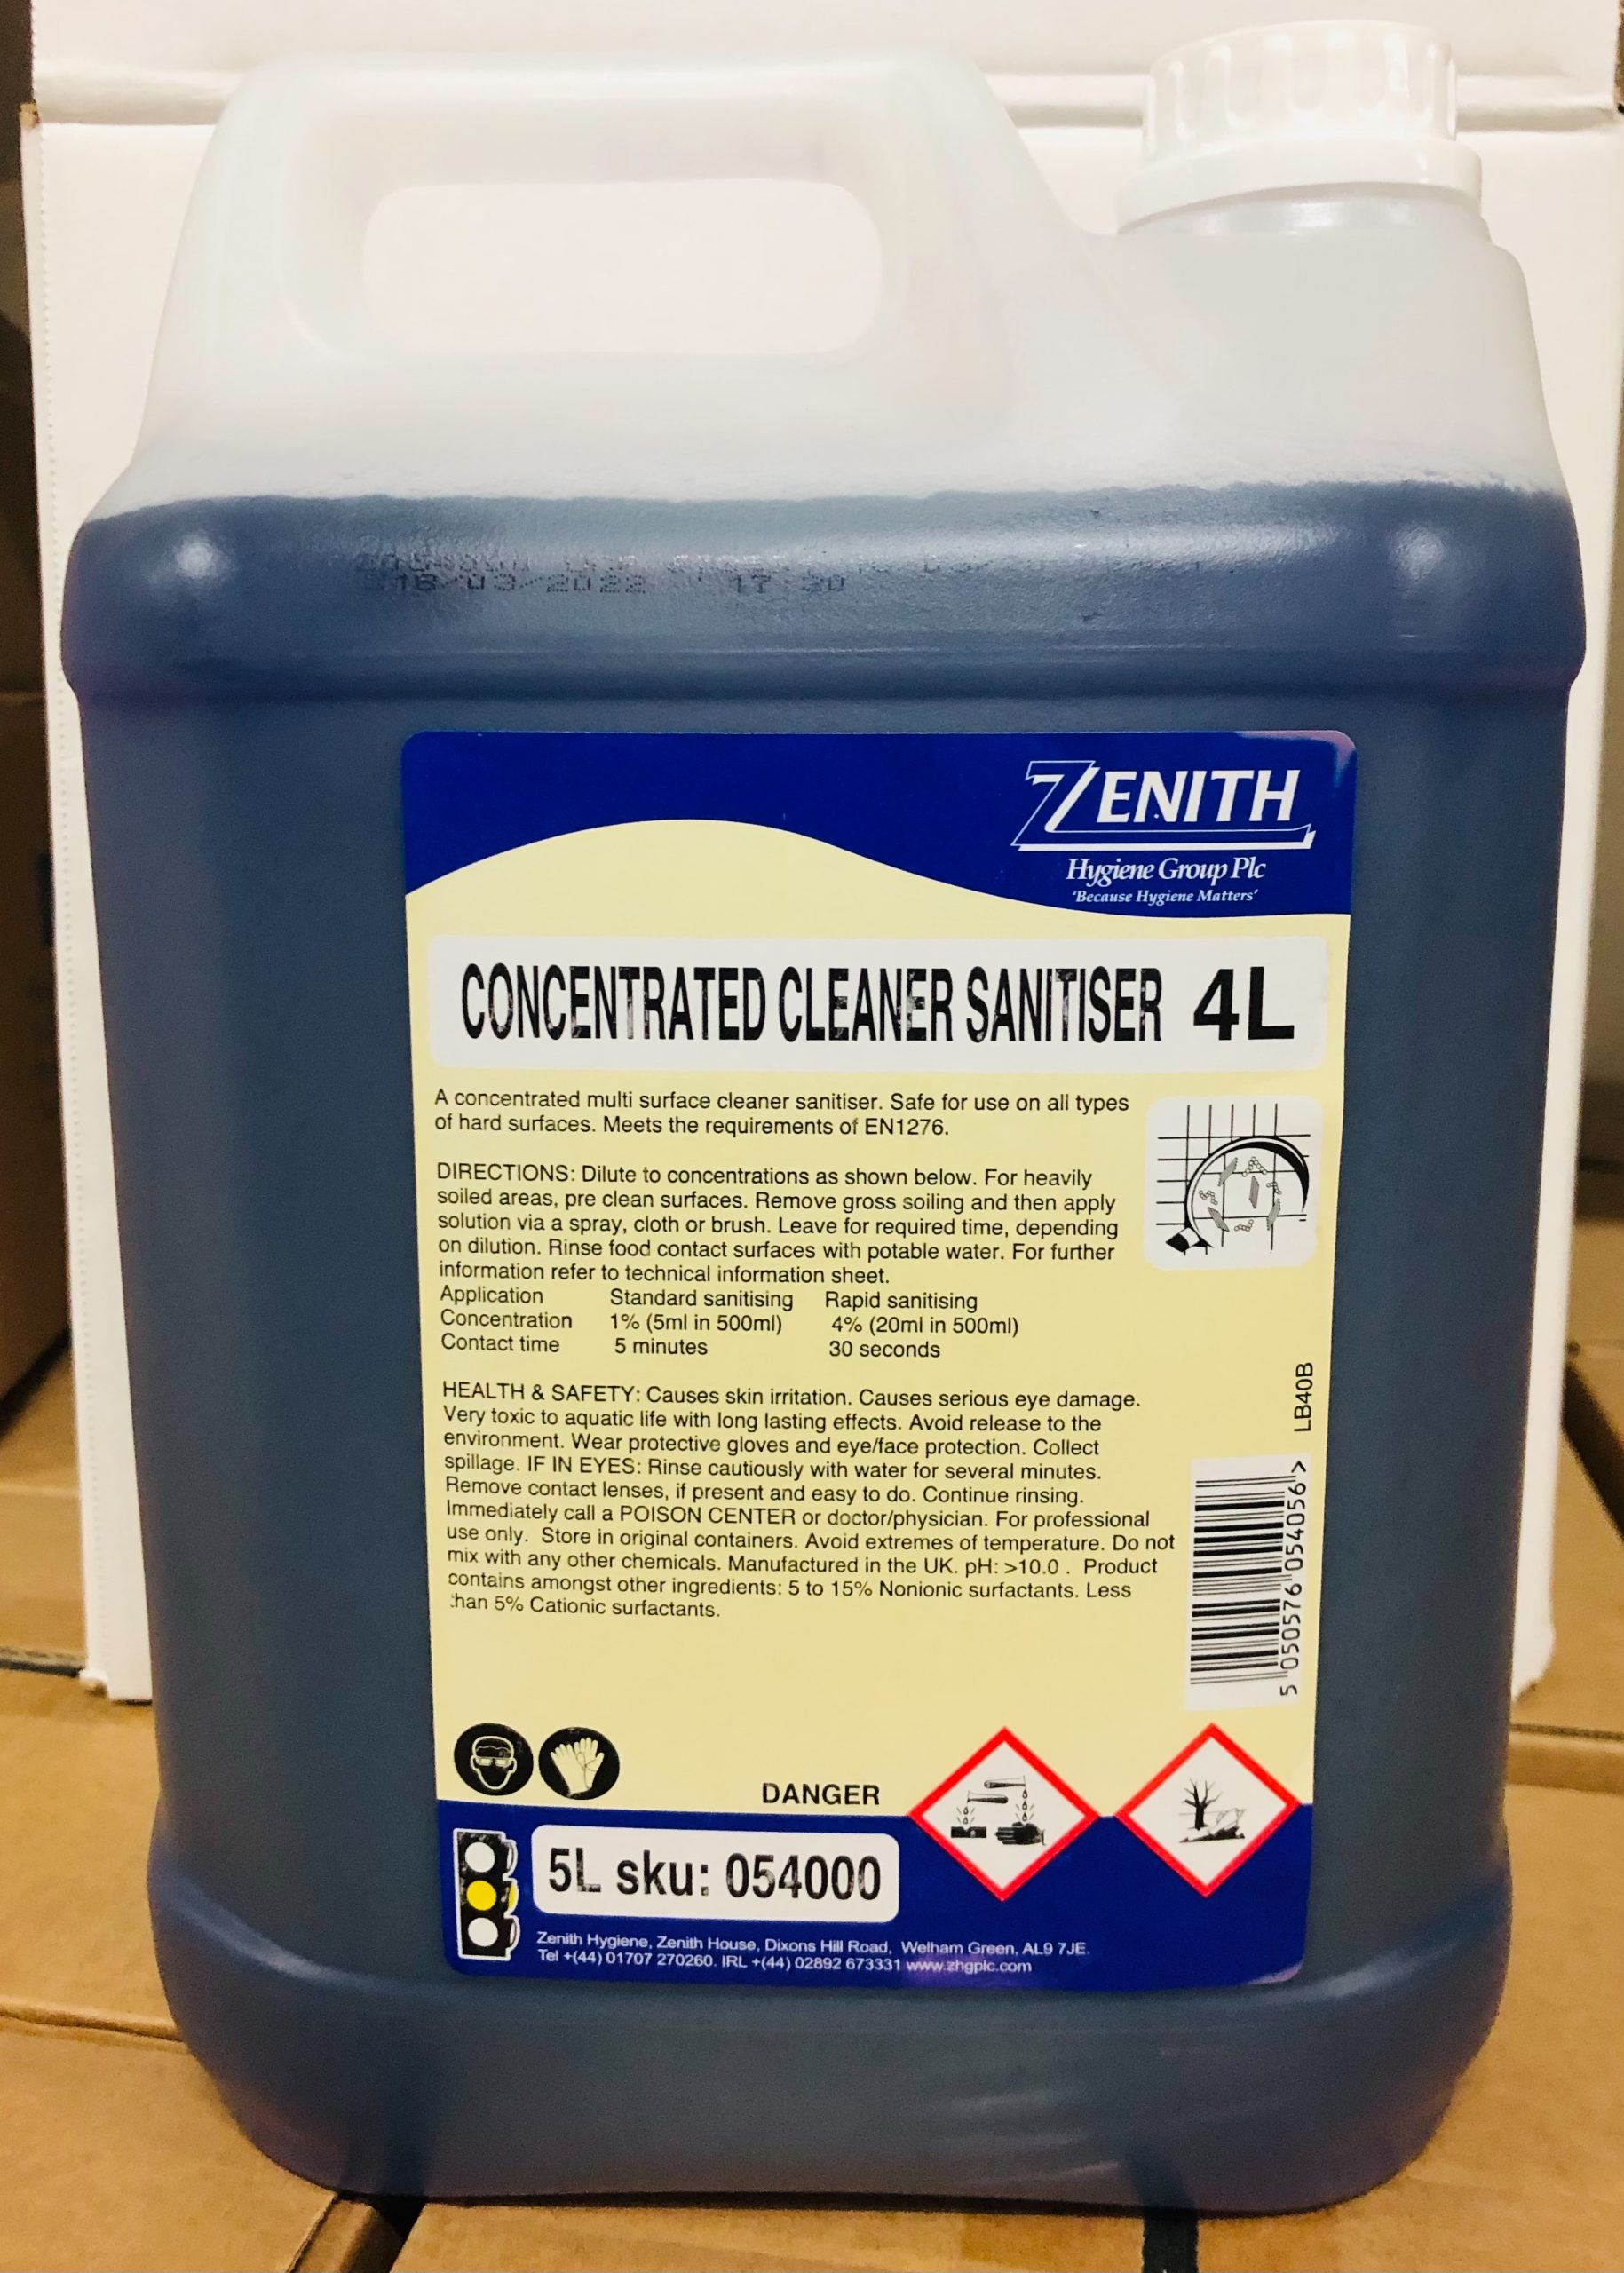 4L Cleaner Sanitizer Concentrate